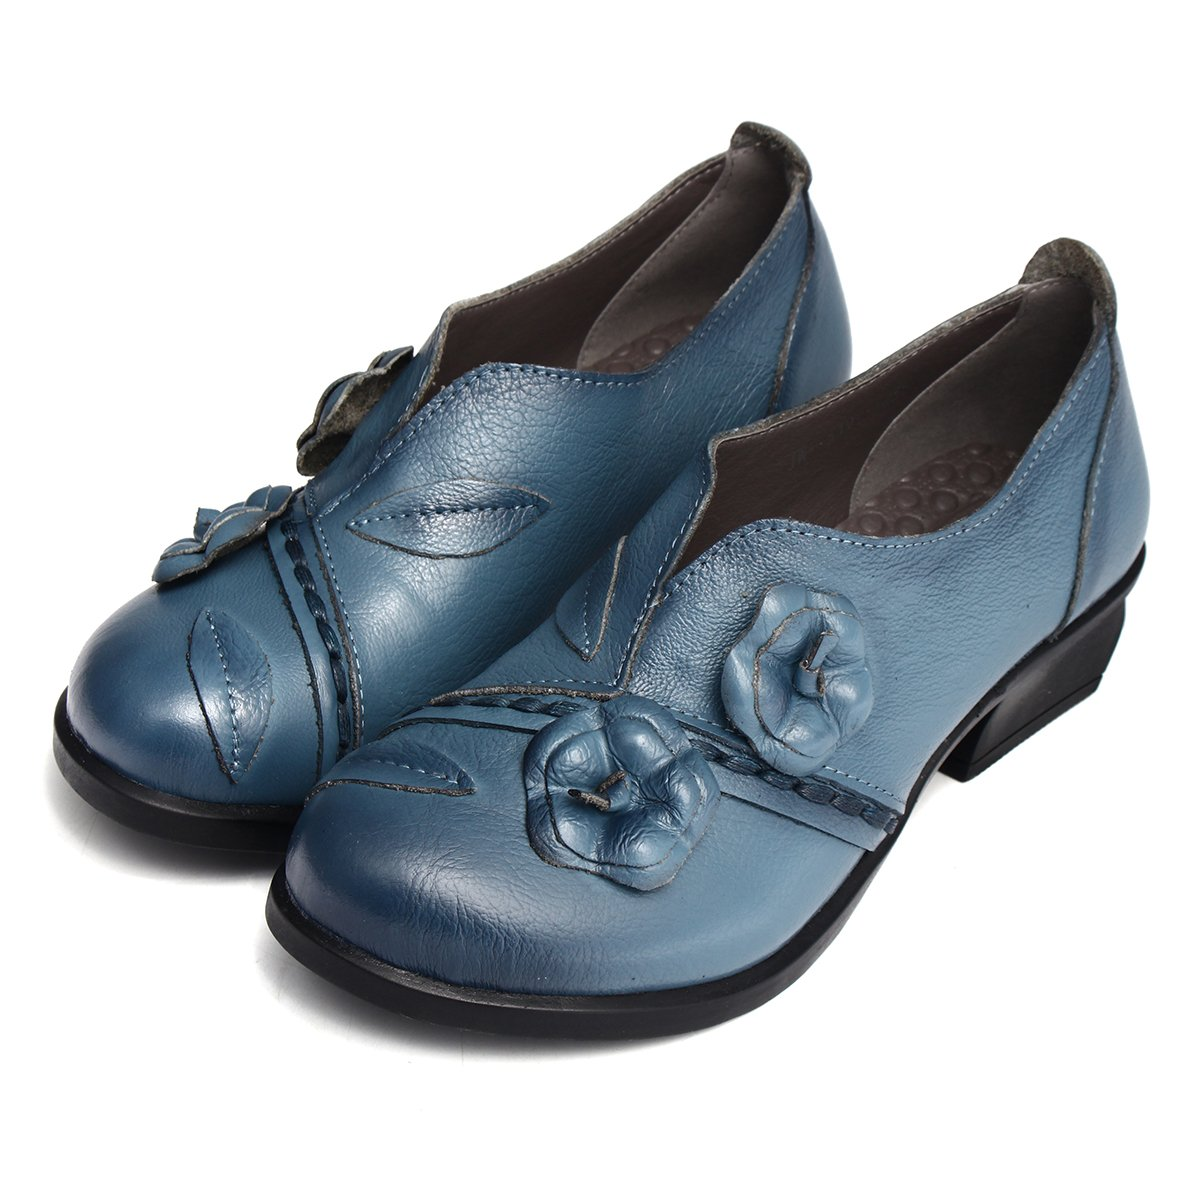 Buy Socofy Women's Pumps-Shoes, Leather